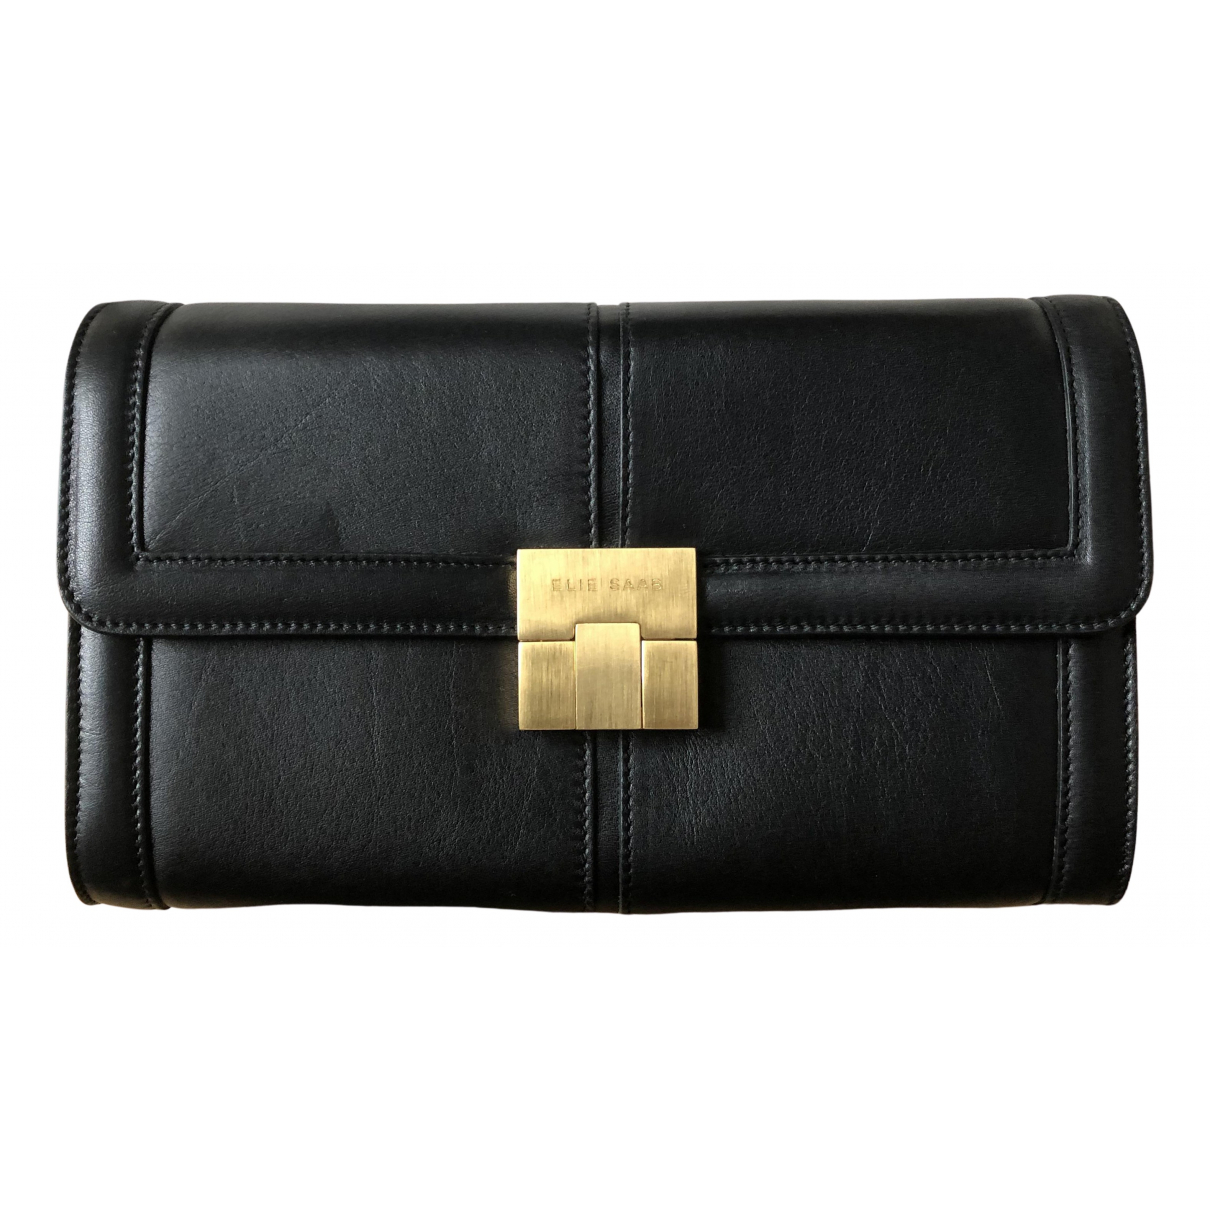 Elie Saab N Black Leather Clutch bag for Women N